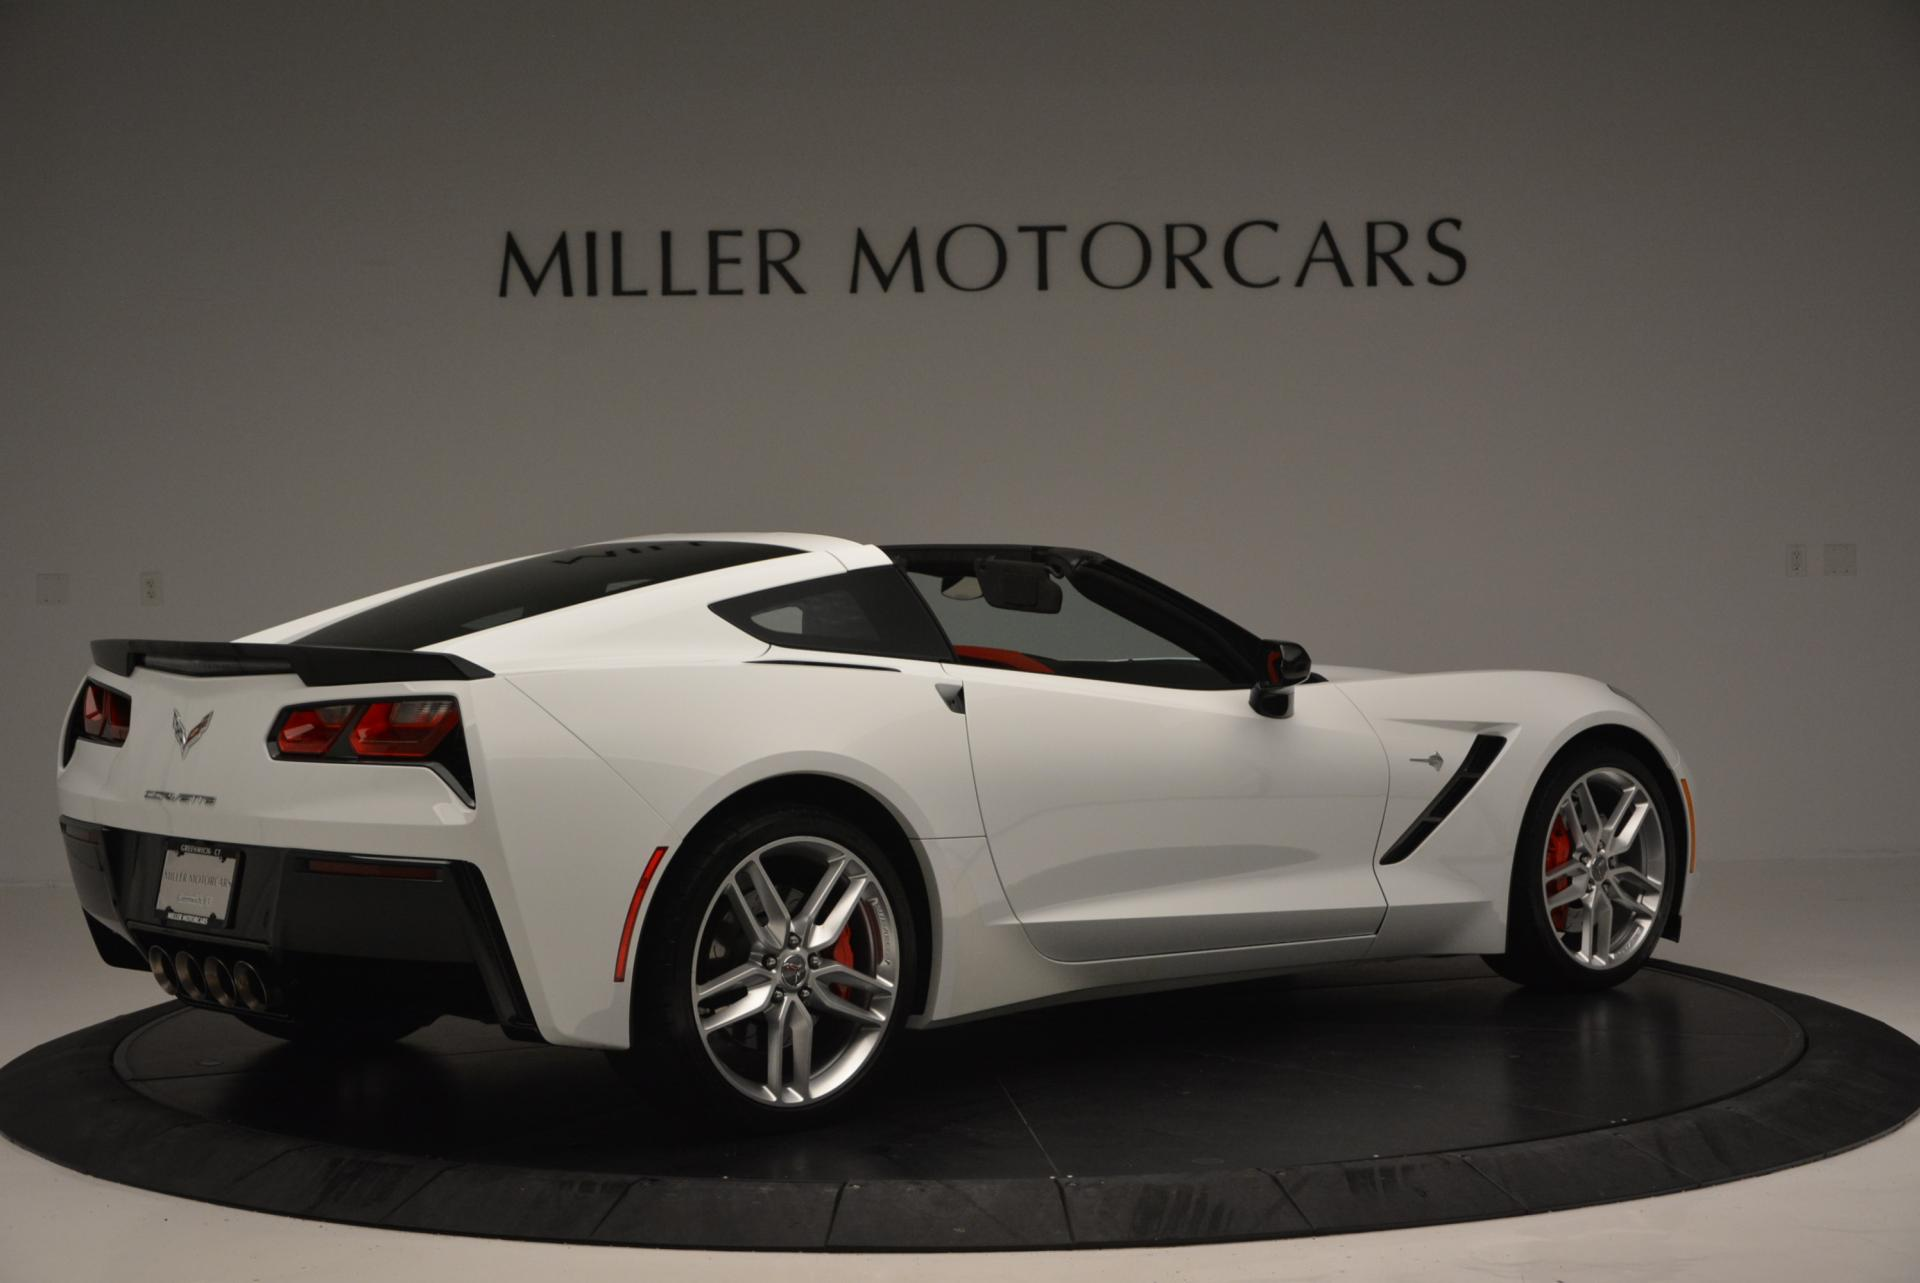 Used 2014 Chevrolet Corvette Stingray Z51 For Sale In Greenwich, CT. Alfa Romeo of Greenwich, 7089 529_p12